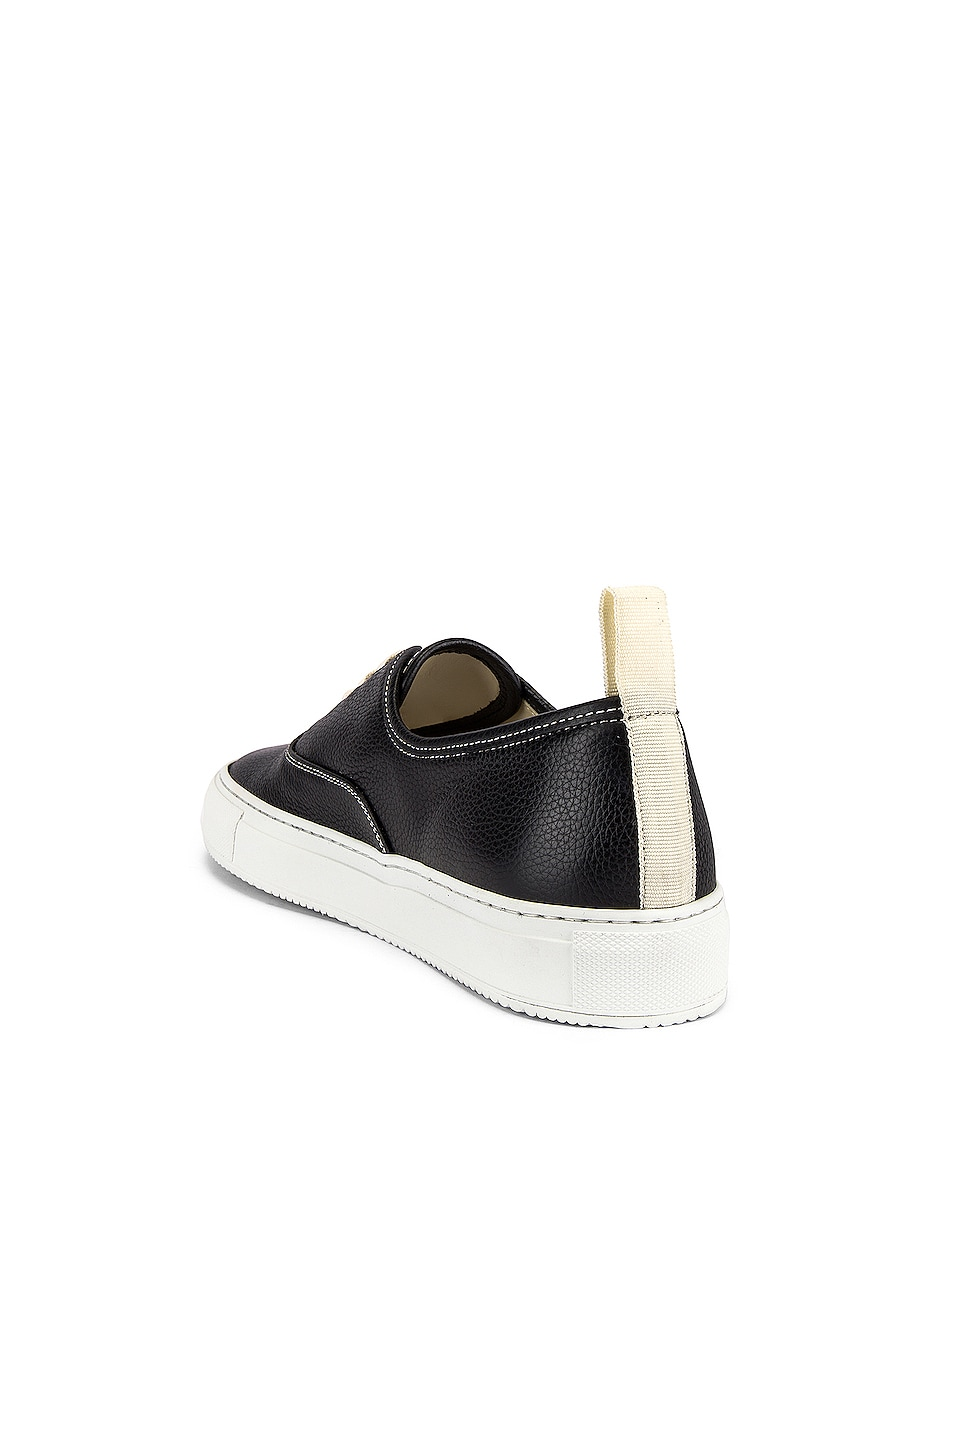 Image 3 of Common Projects Four Hole in Leather Low Sneaker in Black & White